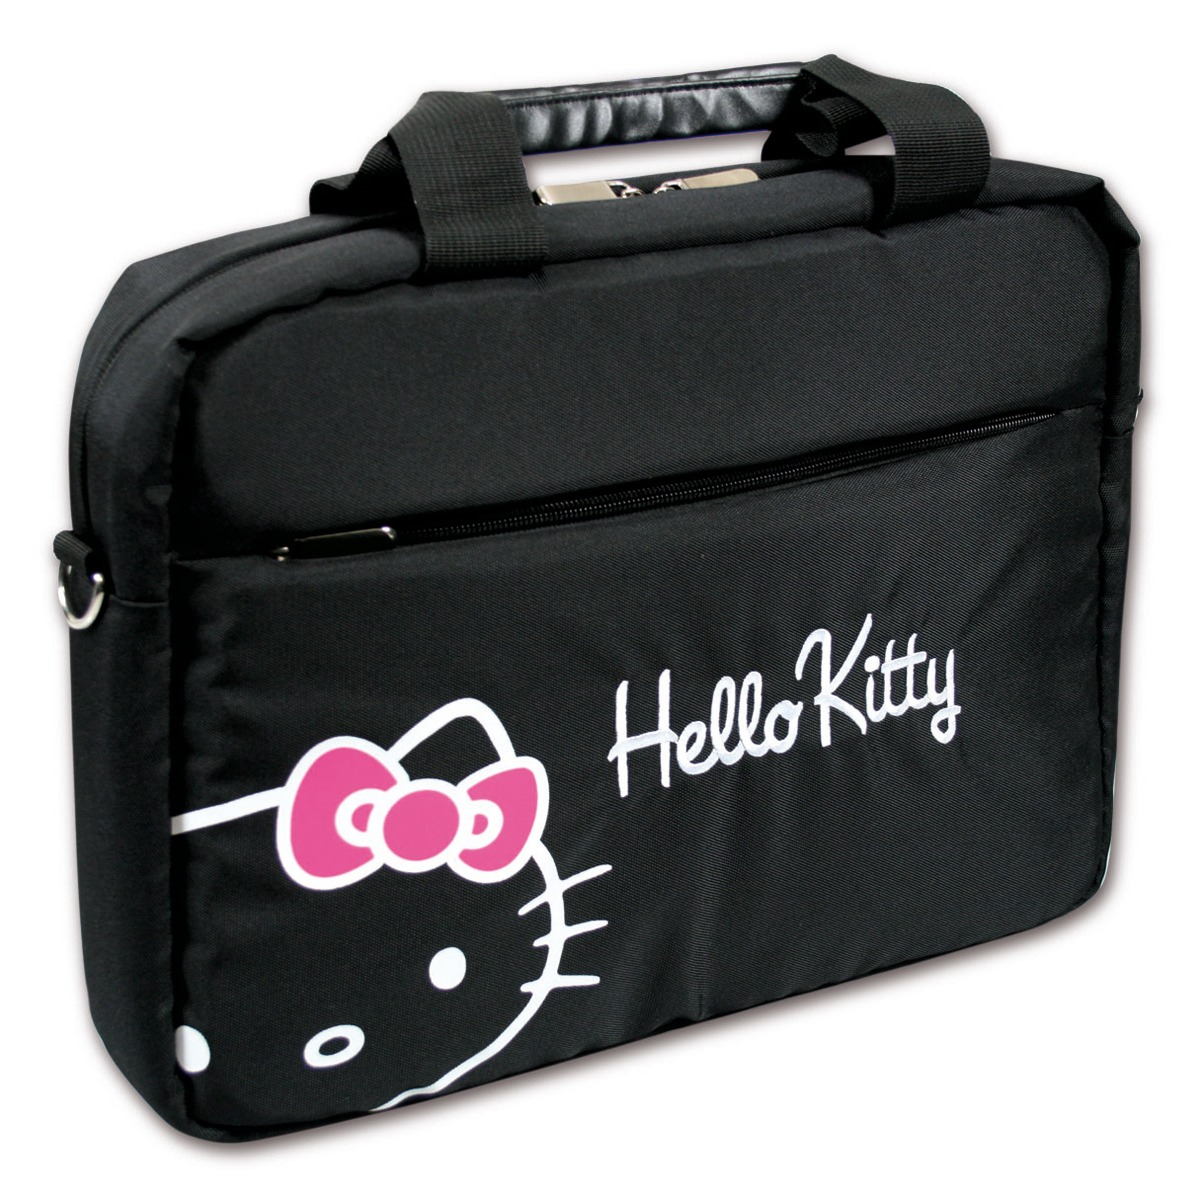 Port designs hello kitty bag 13 3 noir sac sacoche for Housse ordinateur portable